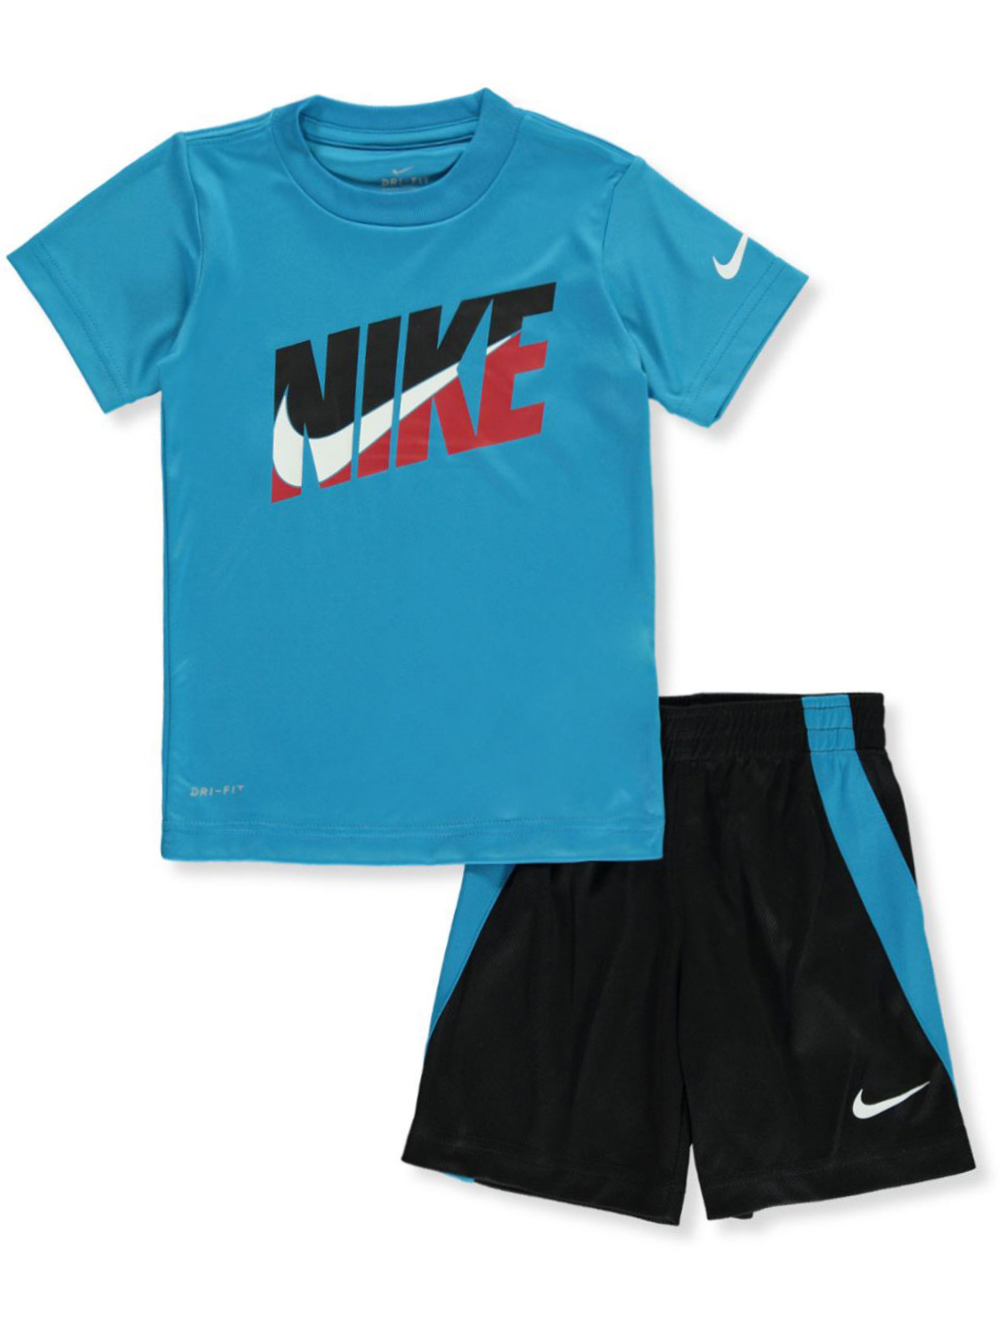 Size 4t Boys for Boys